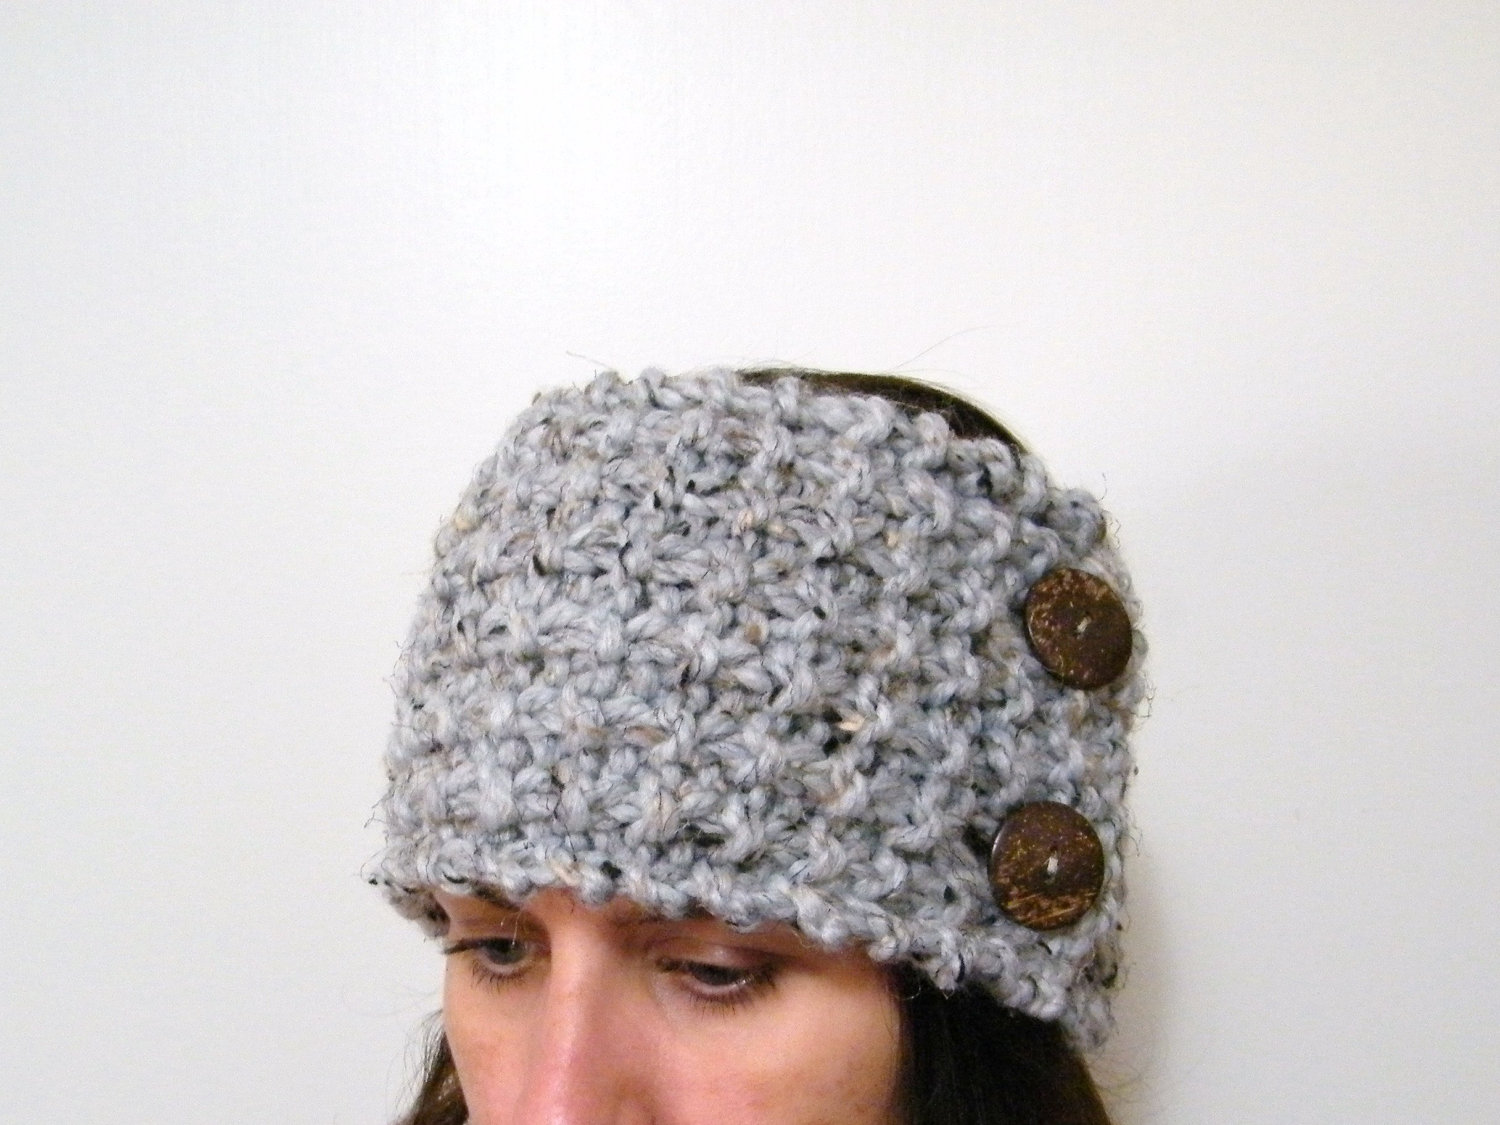 Knit Headband Ear Warmer Pattern : Lewis Knits: Headband / Ear Warmer or Neckwarmer Pattern